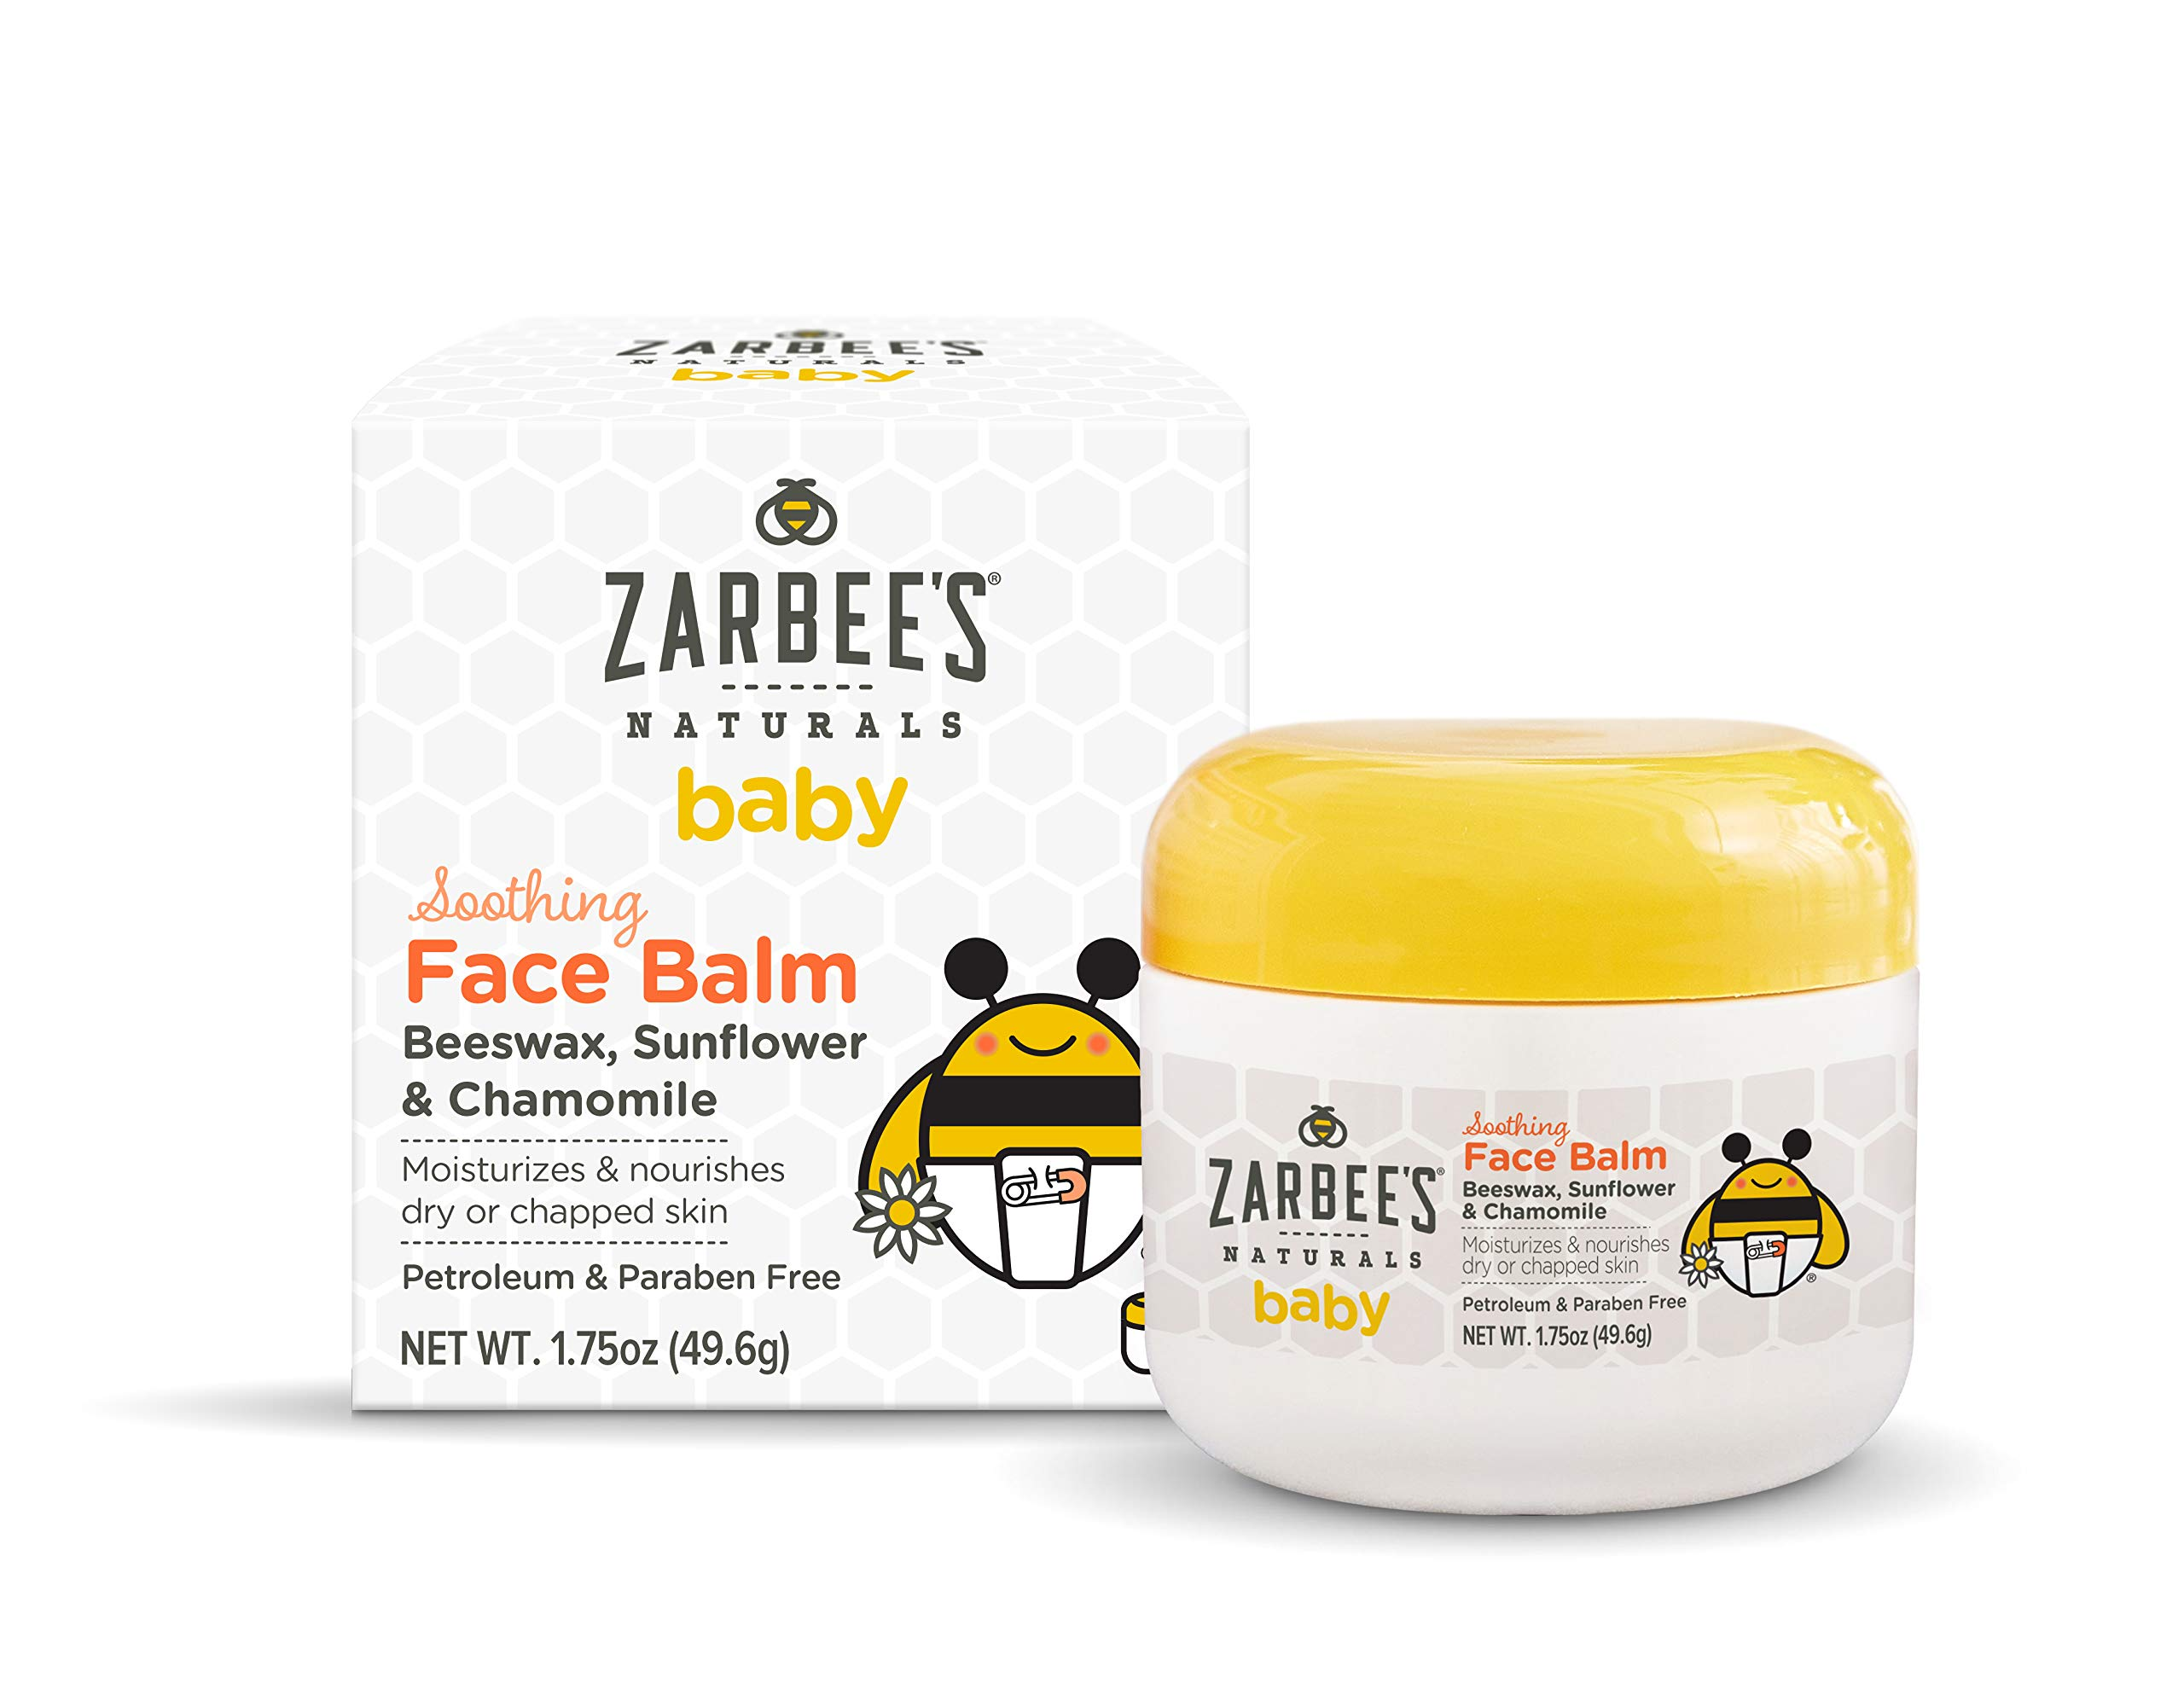 Zarbee's Naturals Baby Soothing Face Balm, 1.75 Ounces, with Beeswax, Sunflower & Chamomile